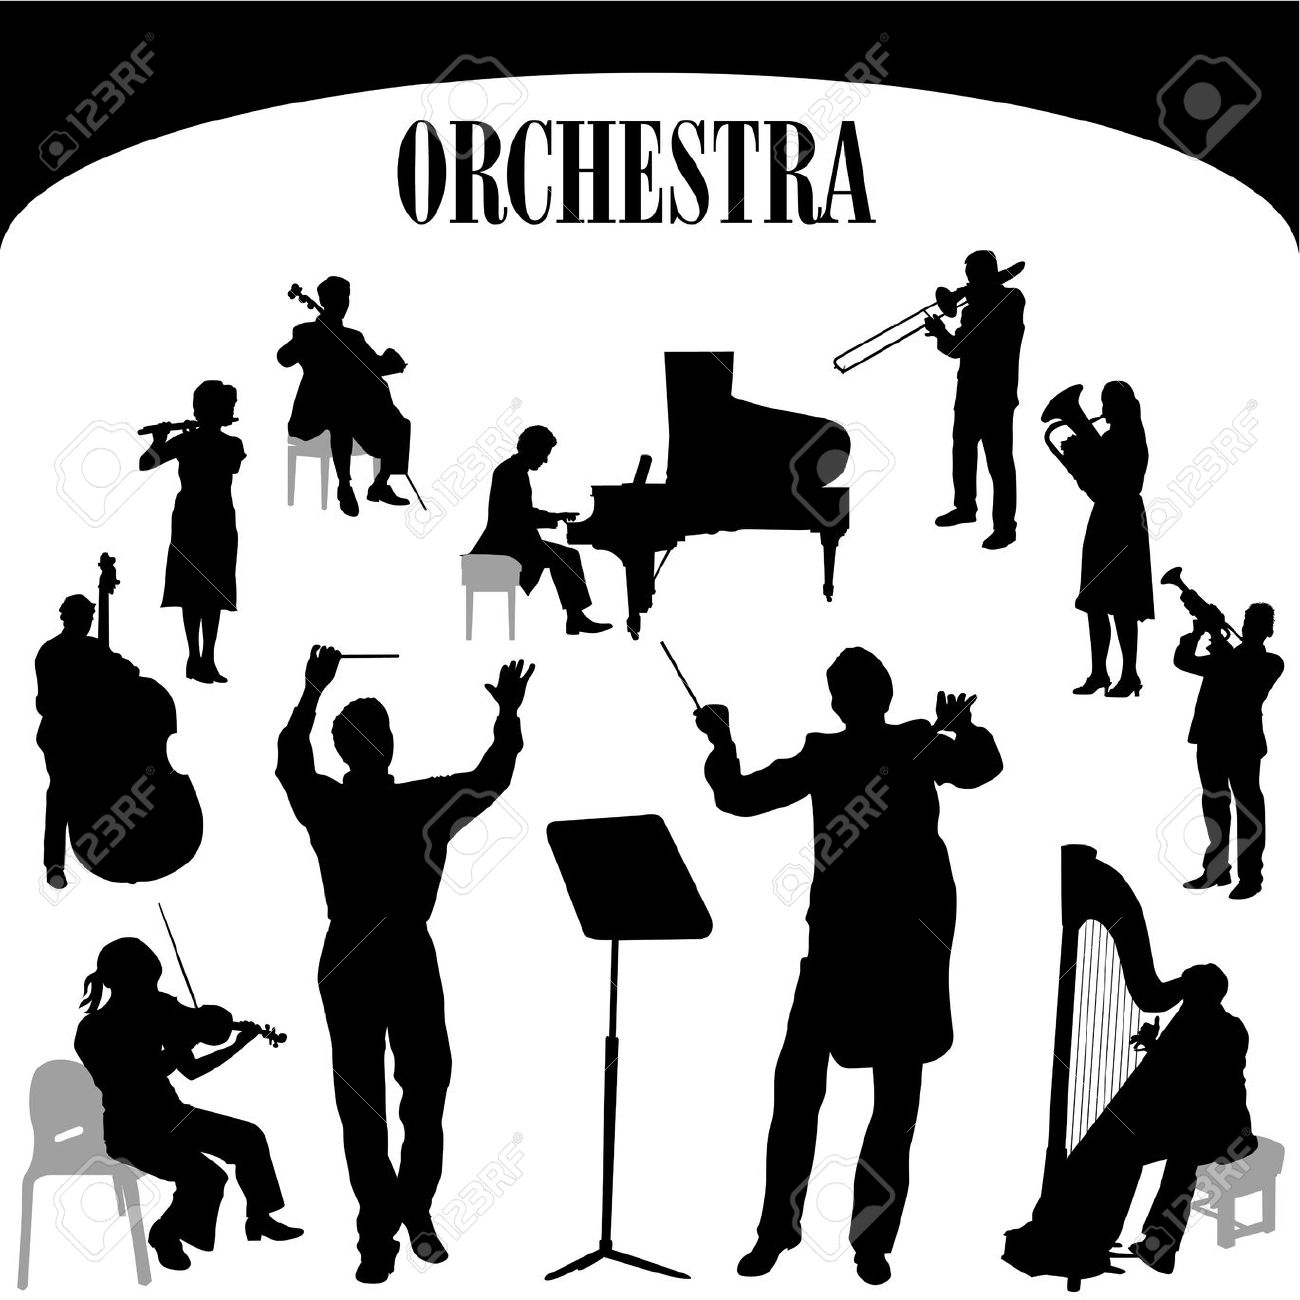 Music clipart orchestra Orchestra%20clipart Clipart Images Free Panda